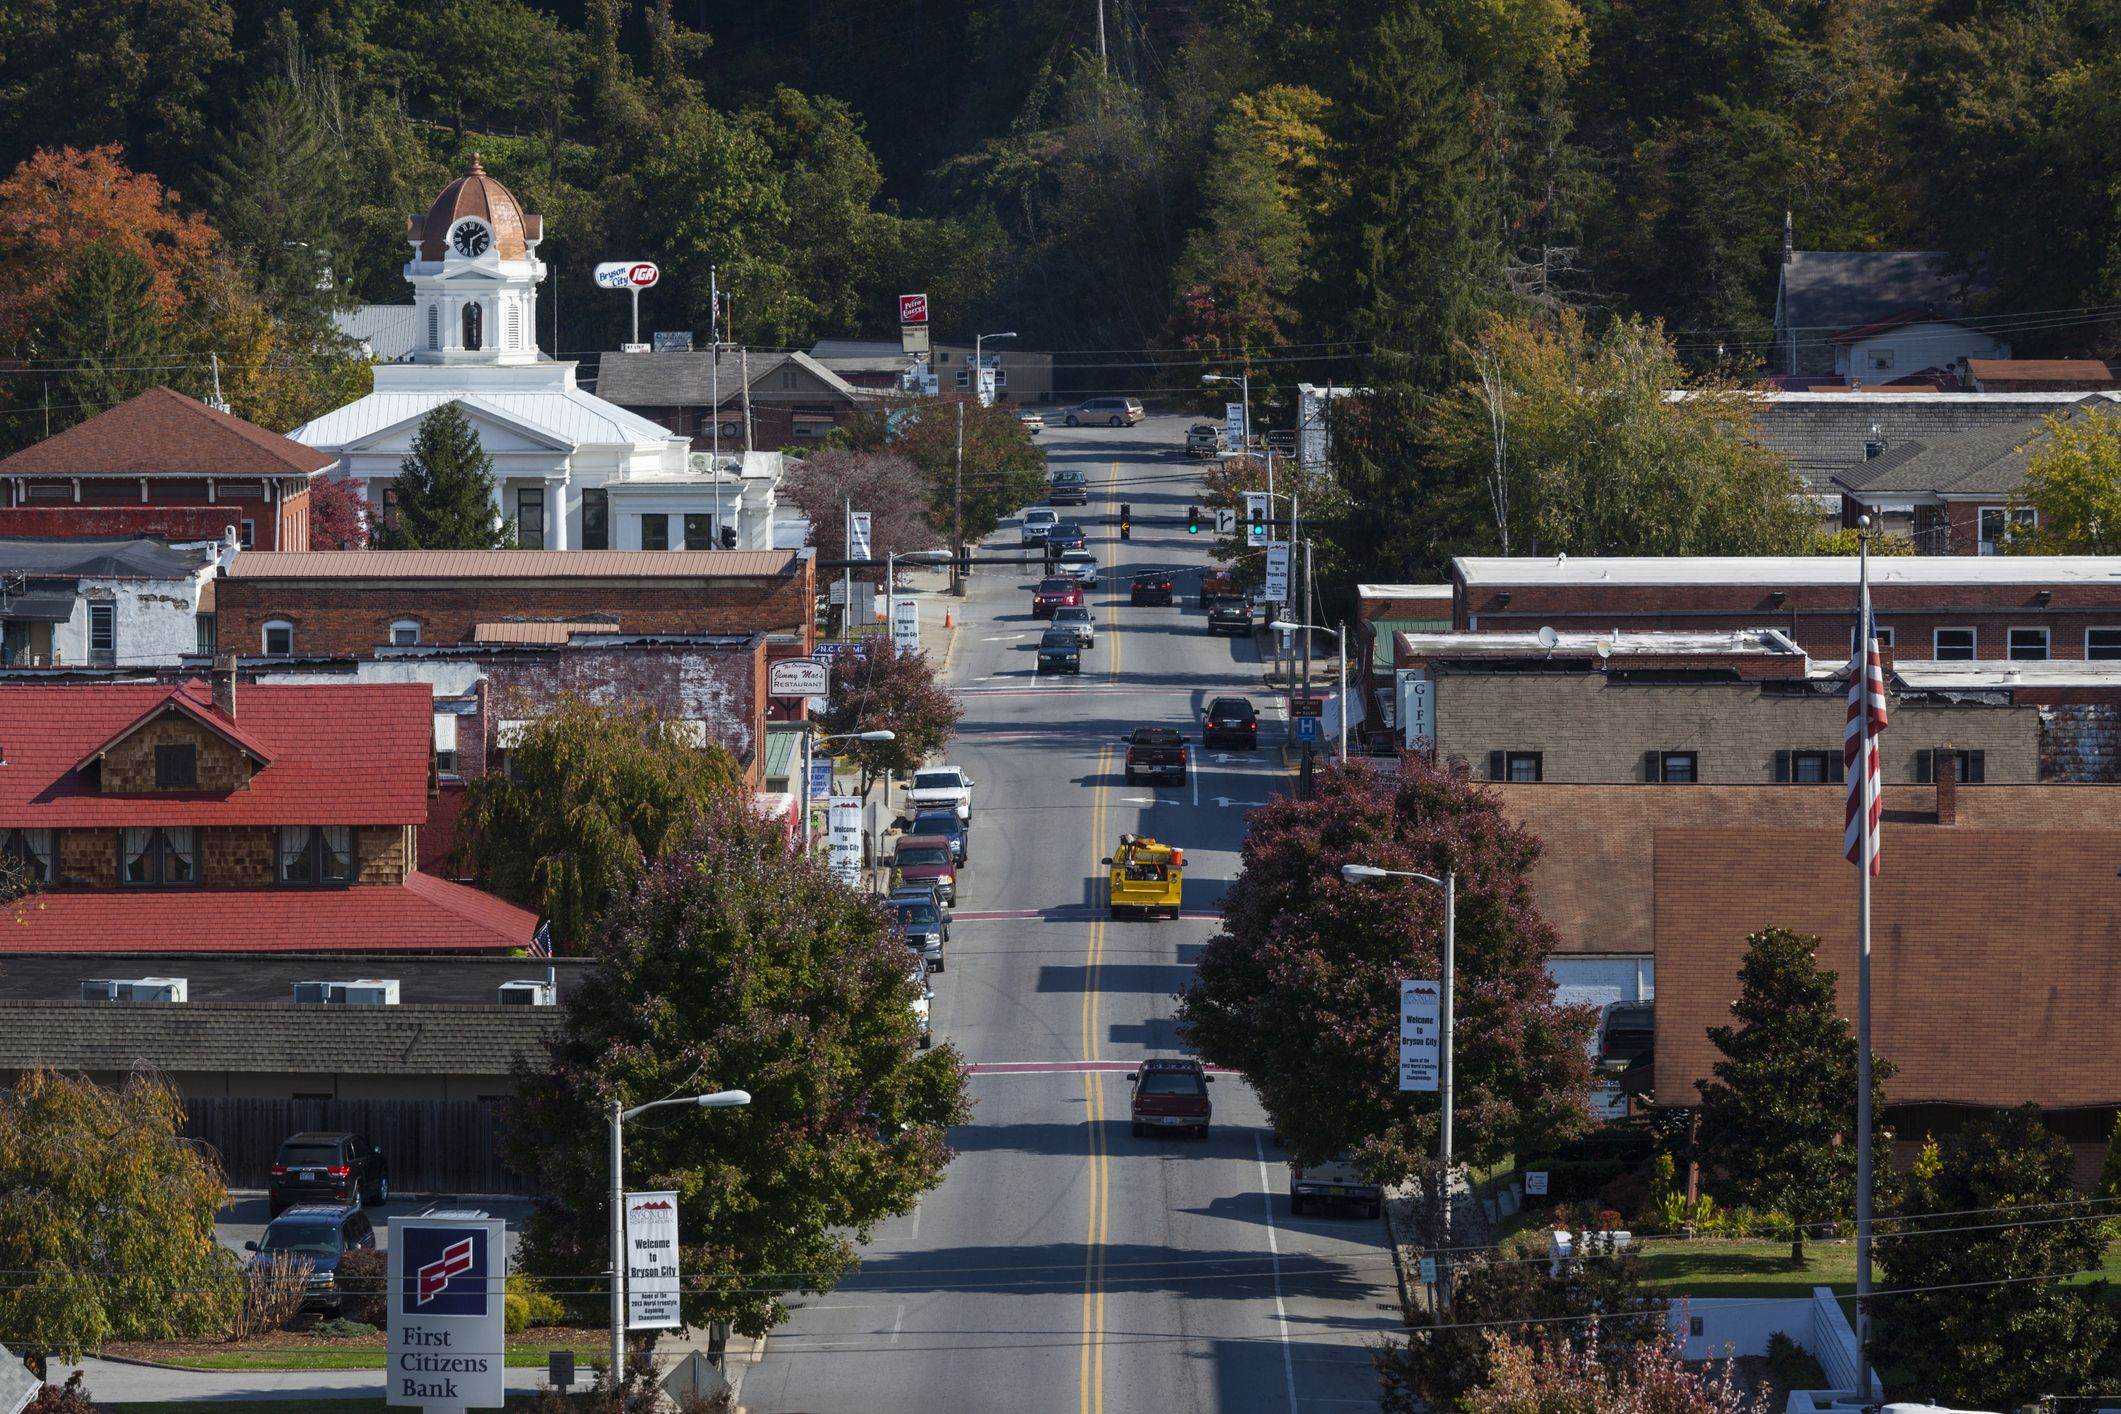 15 Best Small Towns in North Carolina - Great Small Towns to